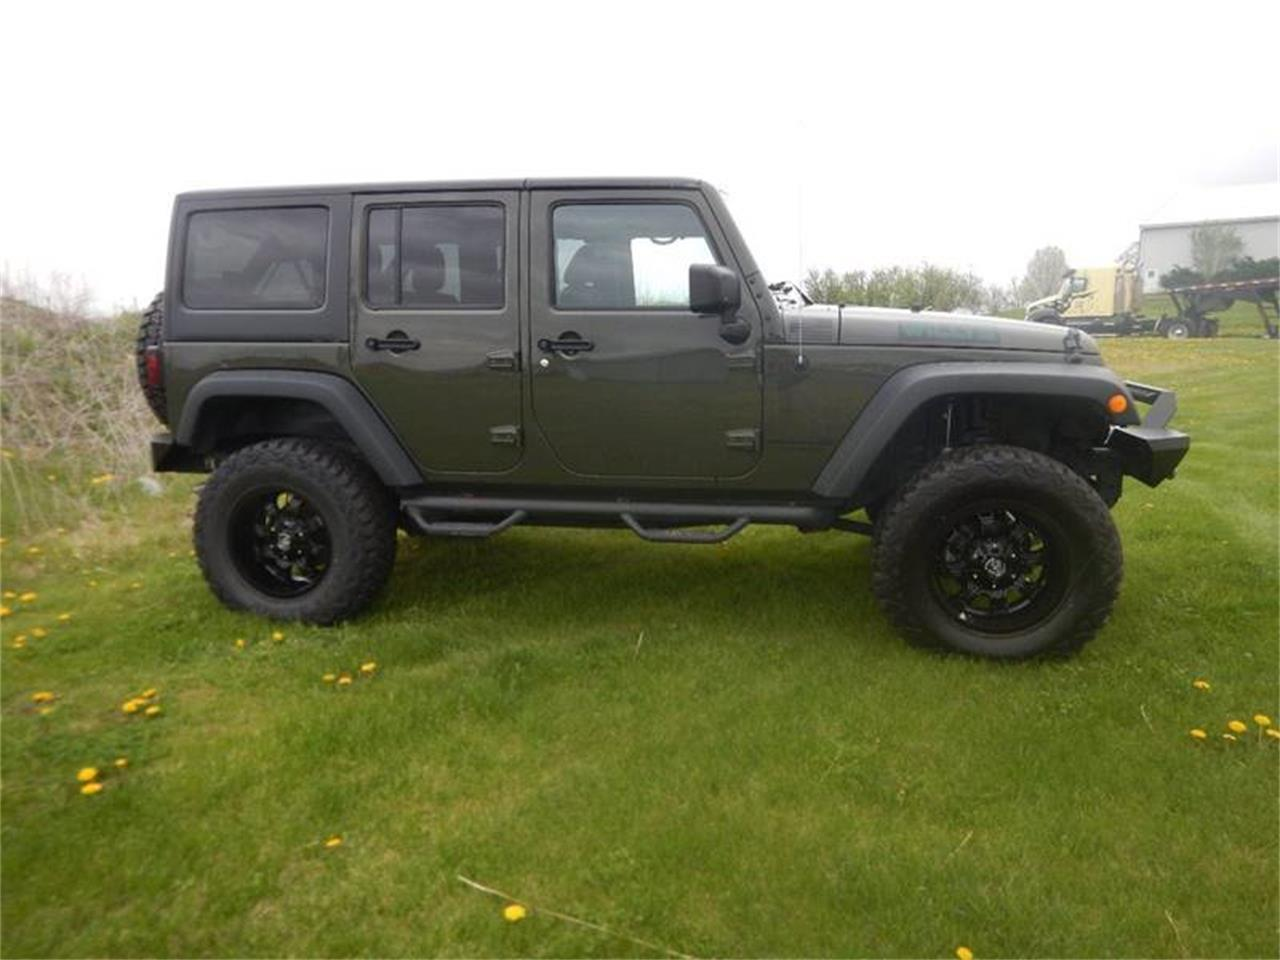 Large Picture of '16 Jeep Wrangler located in Clarence Iowa - $29,995.00 - Q1MX